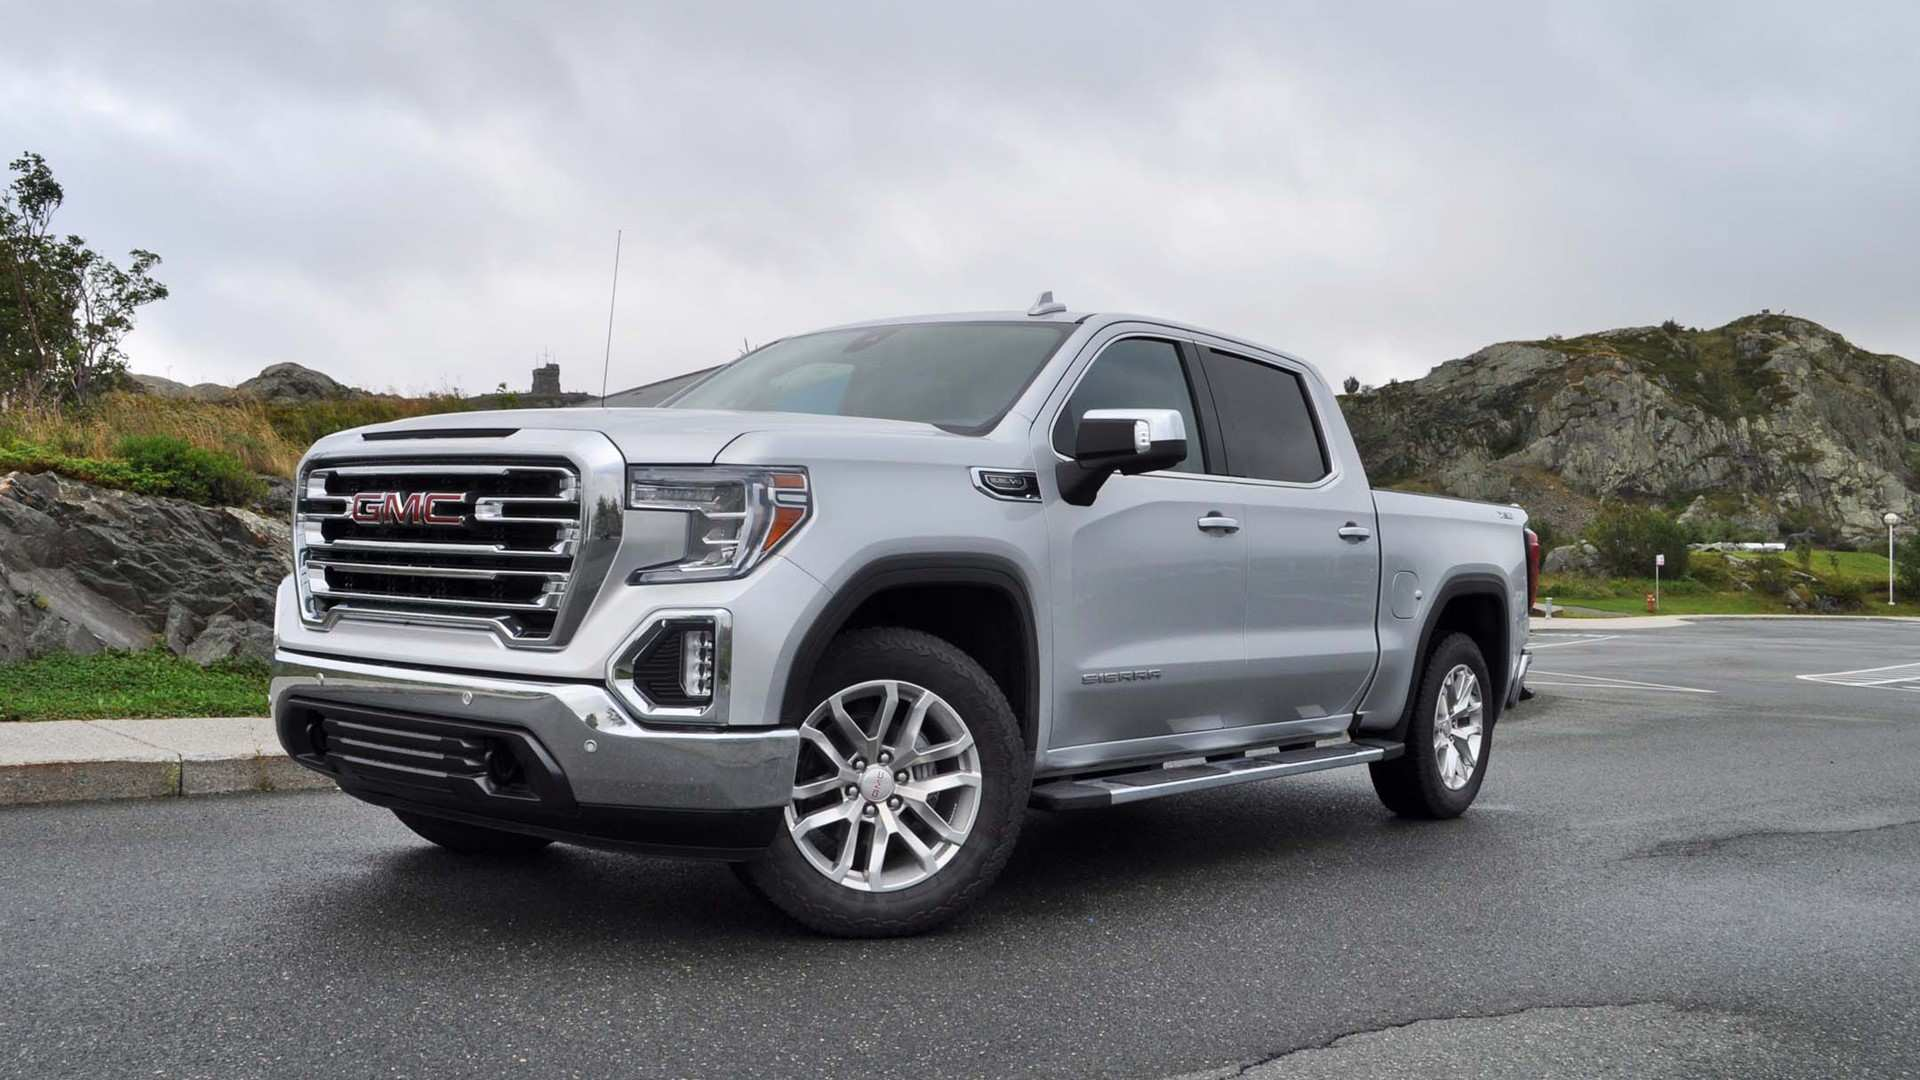 18 Best 2019 GMC Sierra 1500 Diesel First Drive